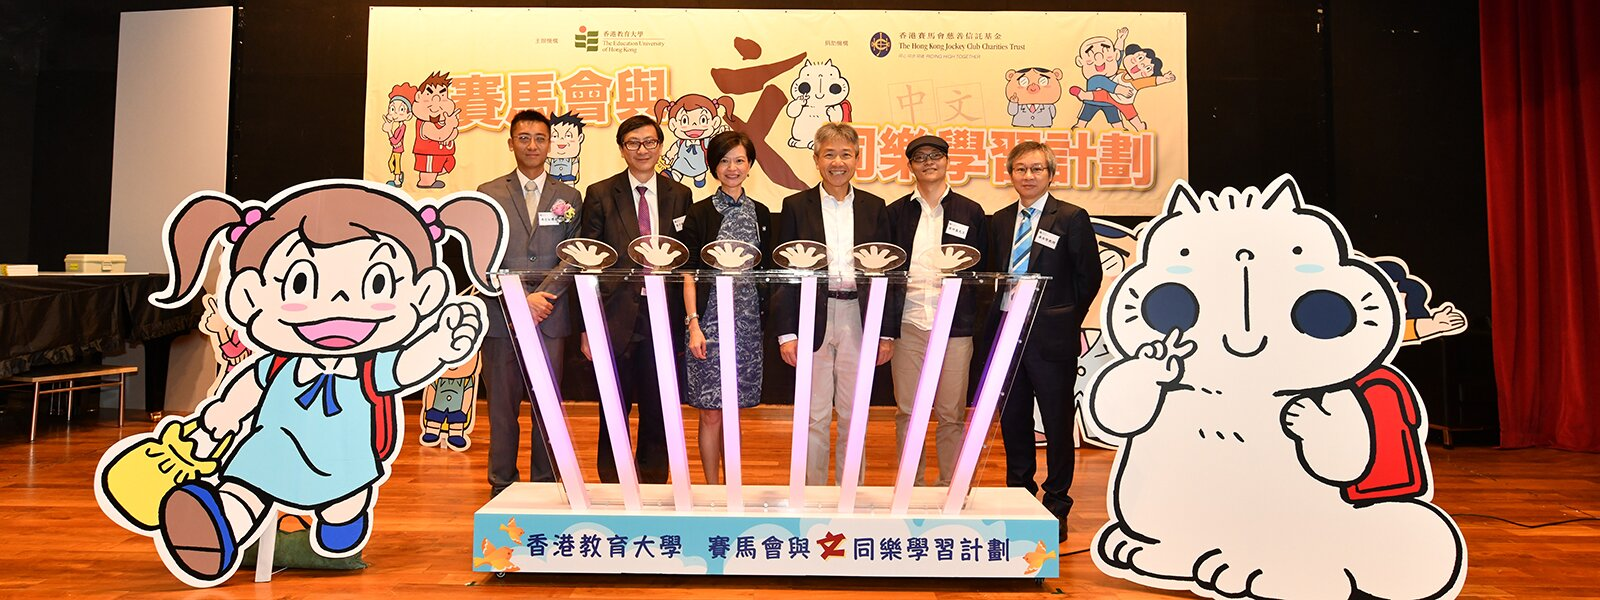 """Launch of EdUHK's """"Jockey Club from Words to Culture Programme: an Animated Way to Learn Chinese"""" Project"""